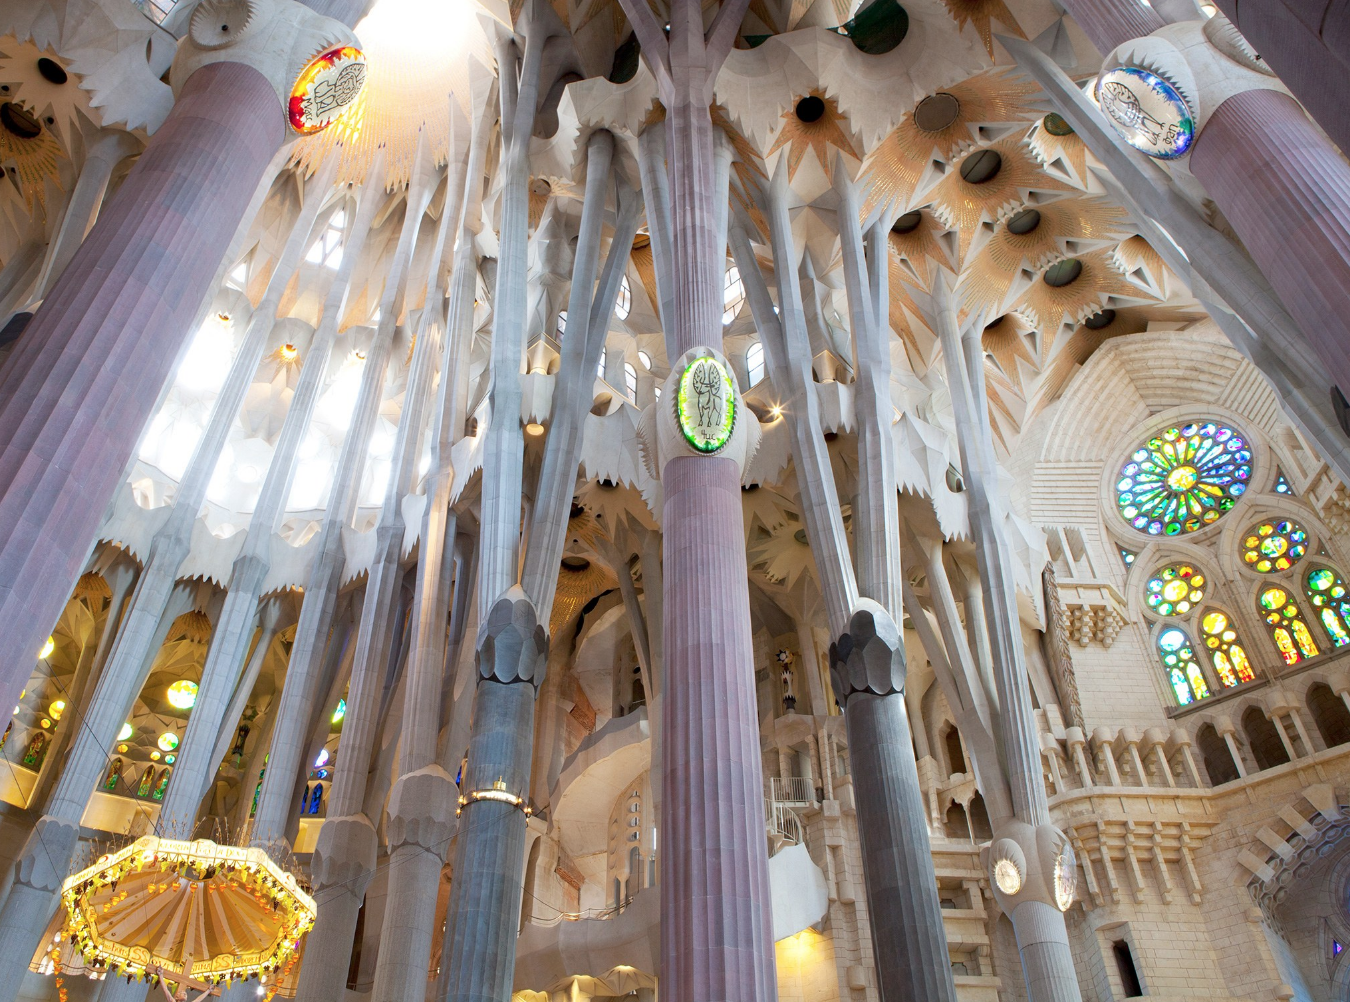 Inside of the Sagrada Familia in Barcelona! (photo via Condé Nast Traveler) Beautiful, massively intricate church that has been constantly added to since 1882.